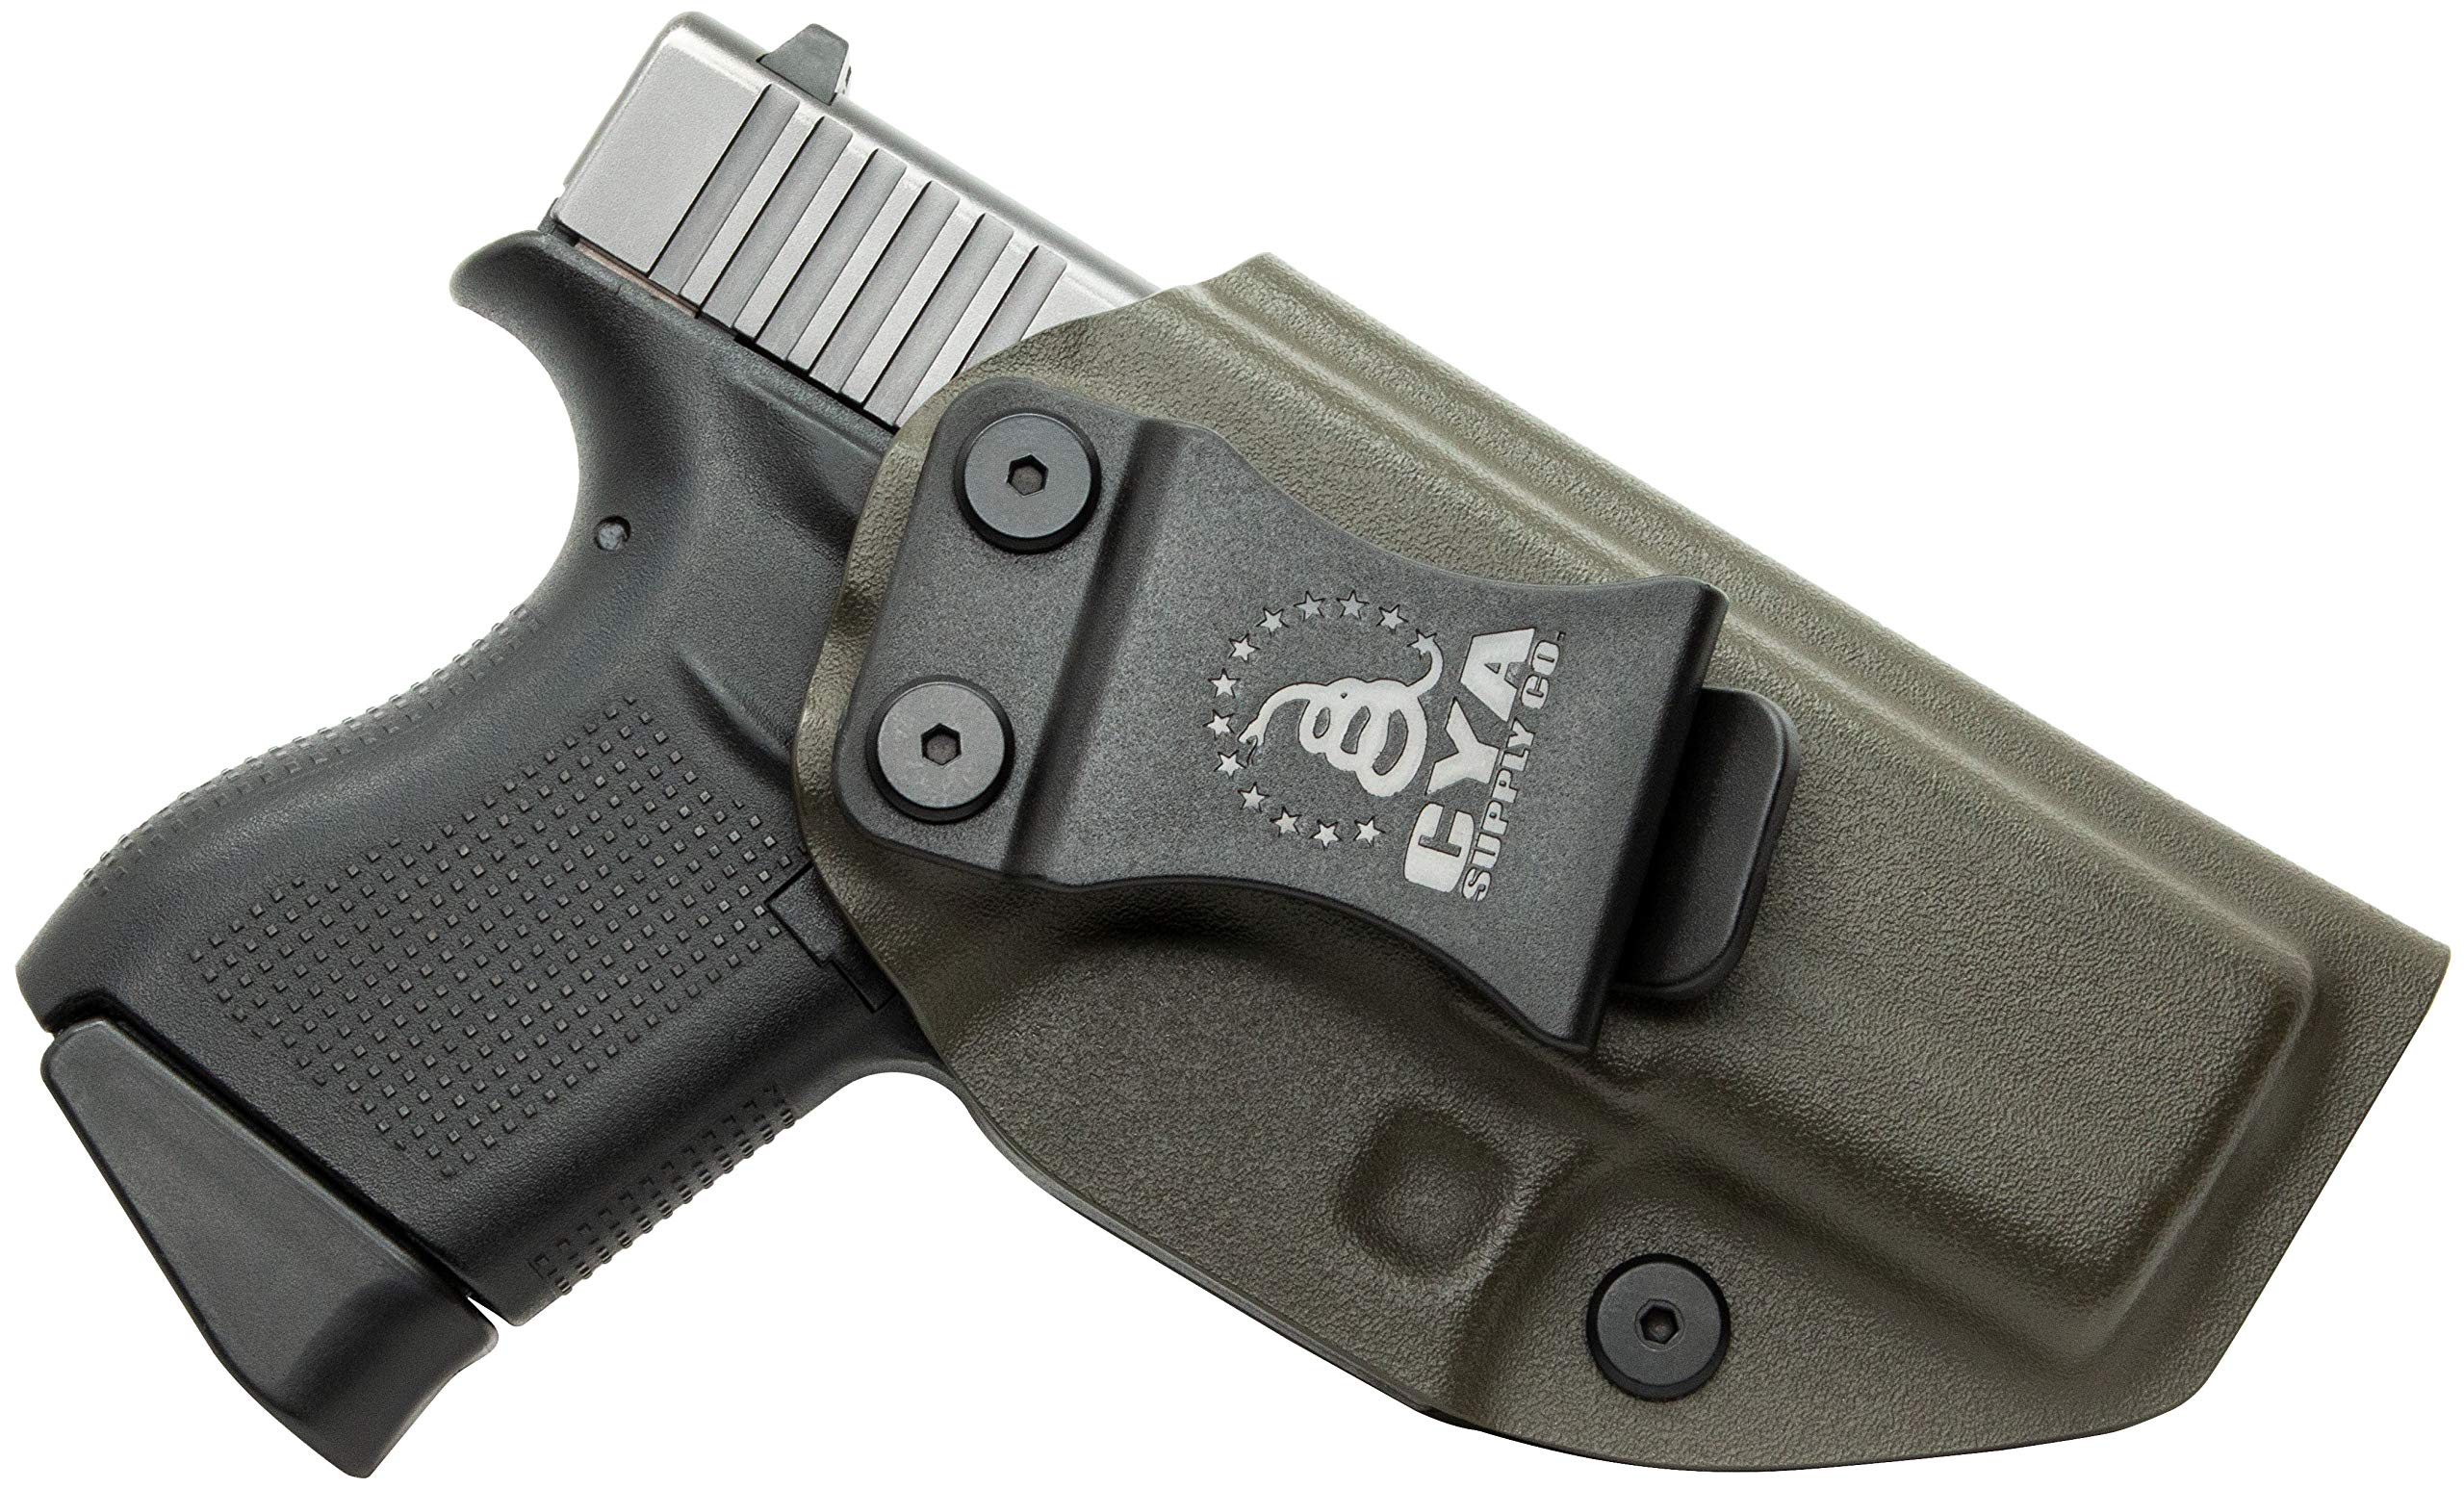 CYA Supply Co. IWB Holster Fits: Glock 43 - Veteran Owned Company - Made in USA - Inside Waistband Concealed Carry Holster by CYA Supply Co.